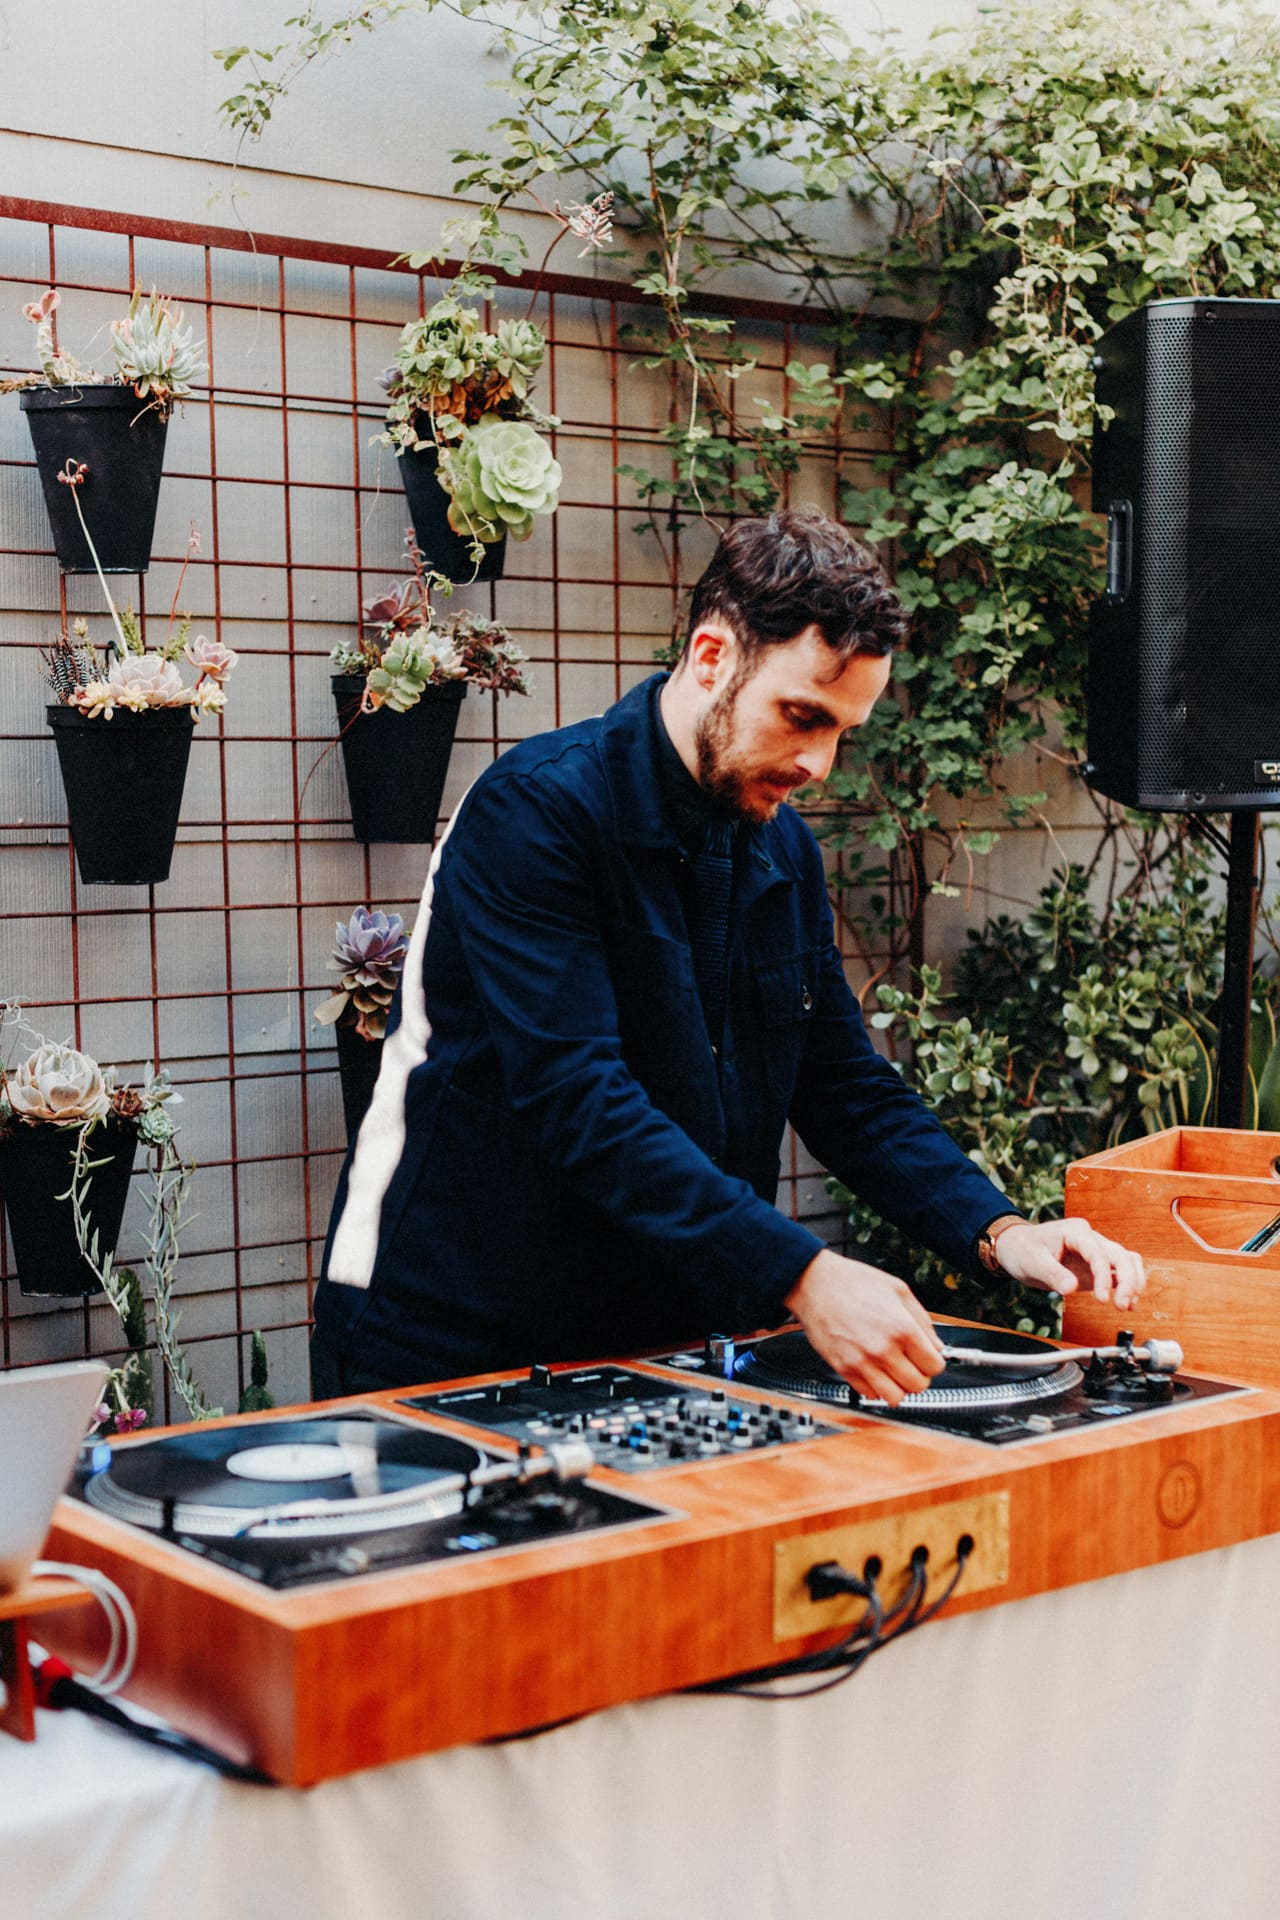 The DJ plays a record at the Stable Cafe Wedding in San Francisco